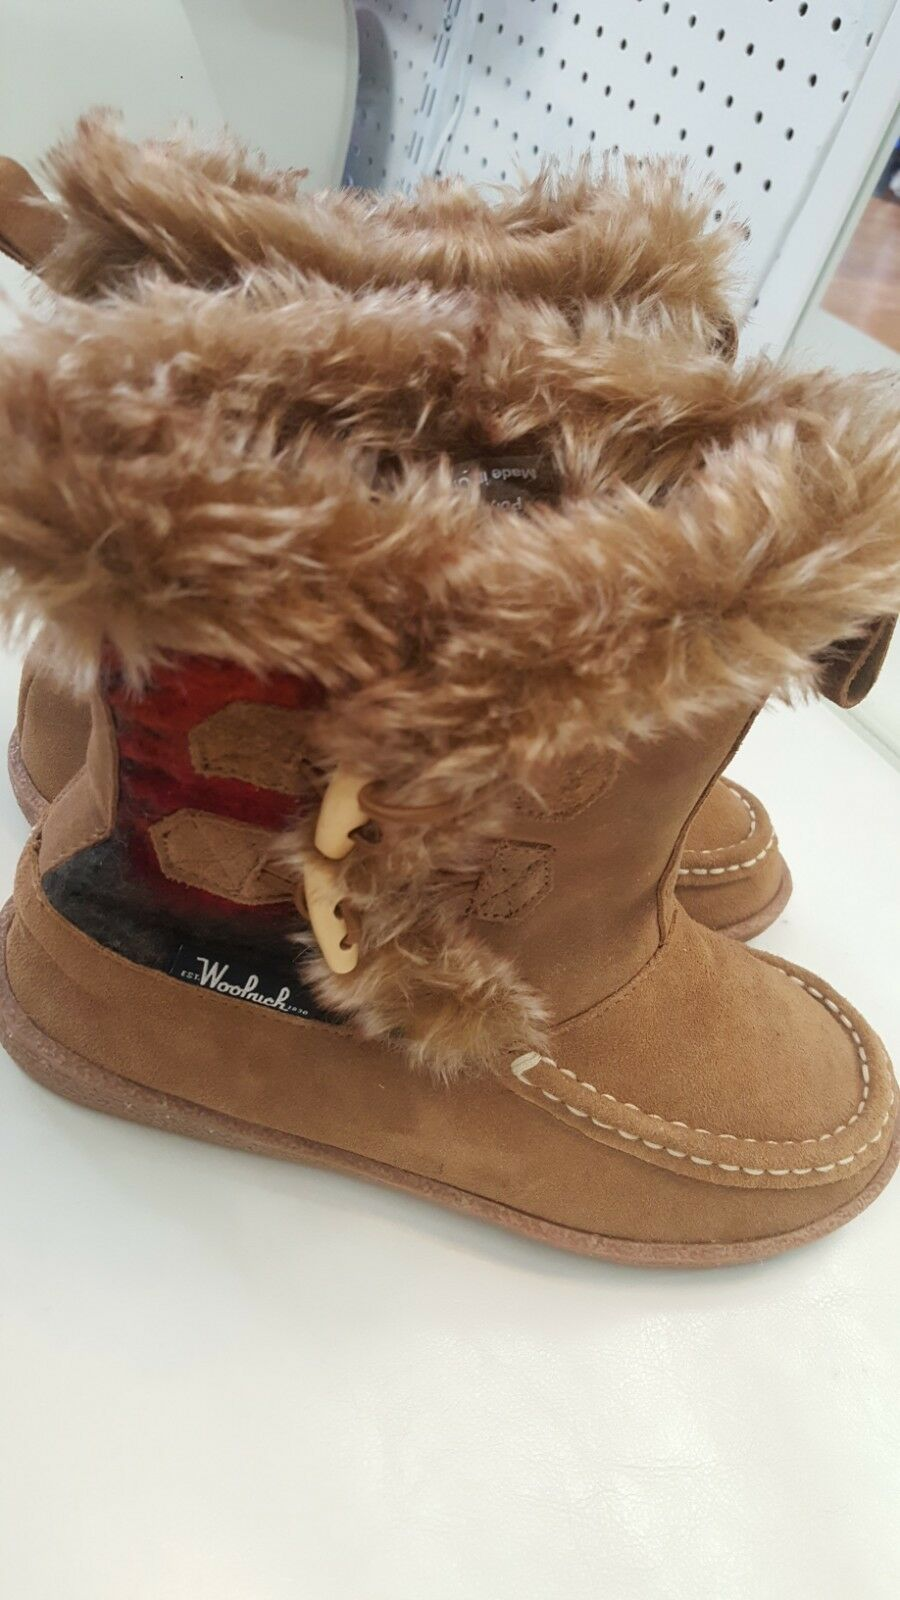 Woolrich Womens Pine Creek Ii Ii Ii Brown Snow Boots Size 7 (11926) fc0e99